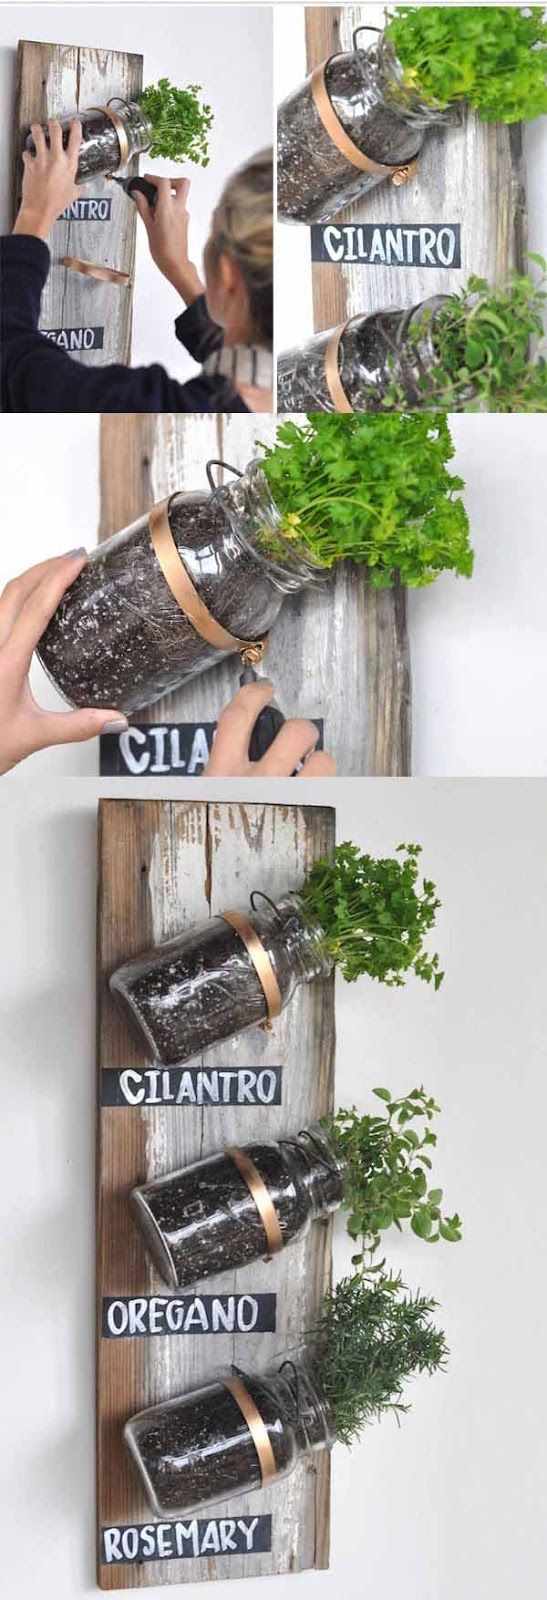 Kitchen Herb Garden Indoor 17 Best Ideas About Mason Jar Herbs On Pinterest Mason Jar